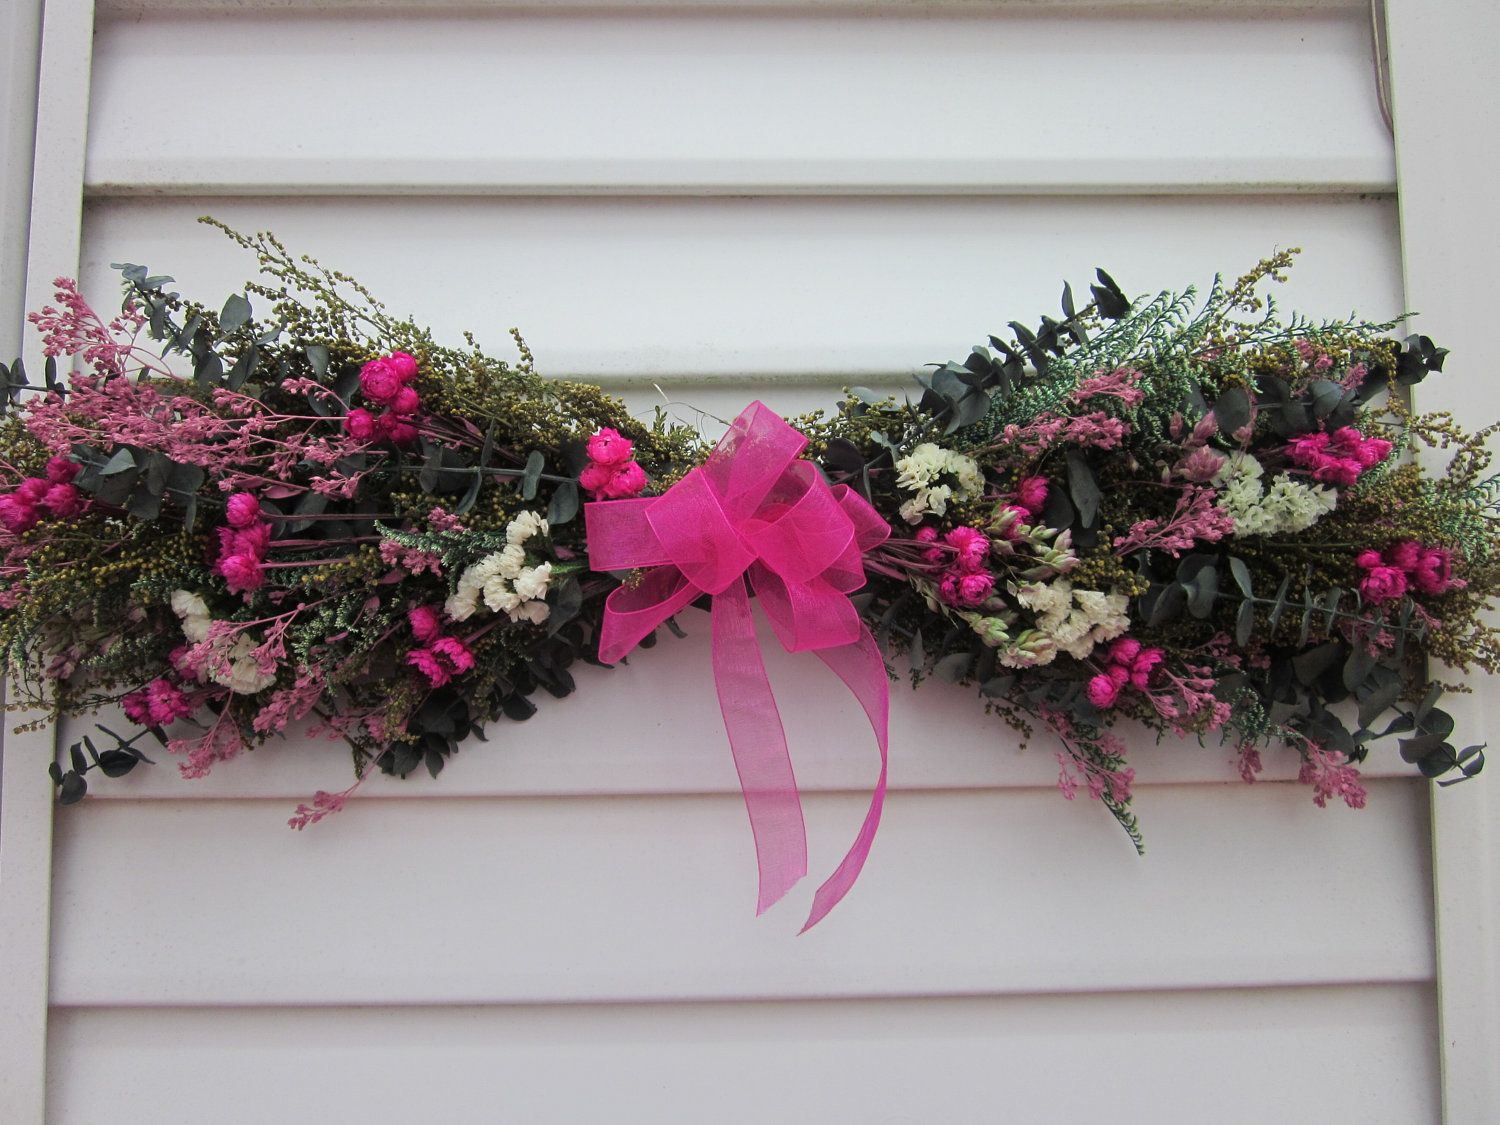 Floral swag craft ideas pinterest swag floral and wreaths floral swag mightylinksfo Choice Image